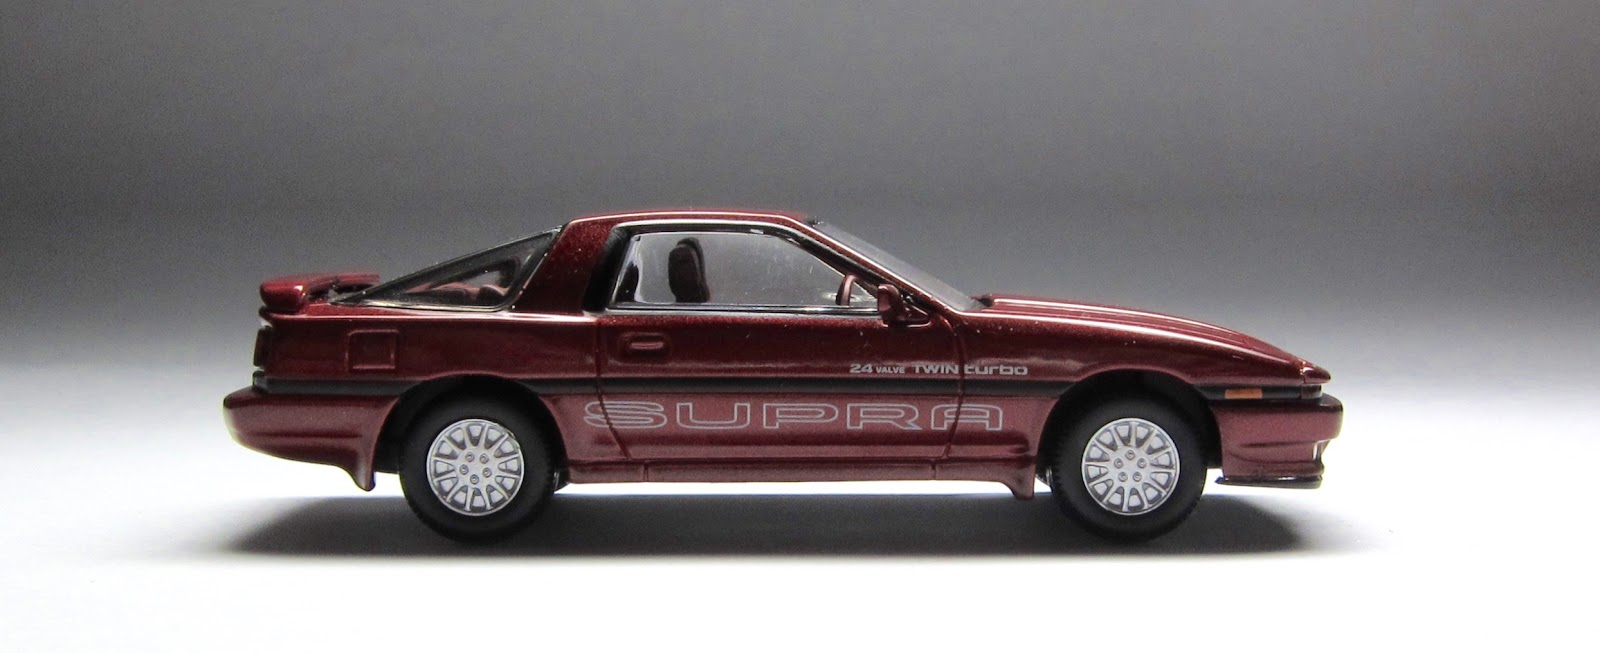 Tomica Limited Vintage Neo Toyota Supra 2.0 Twin Turbo: